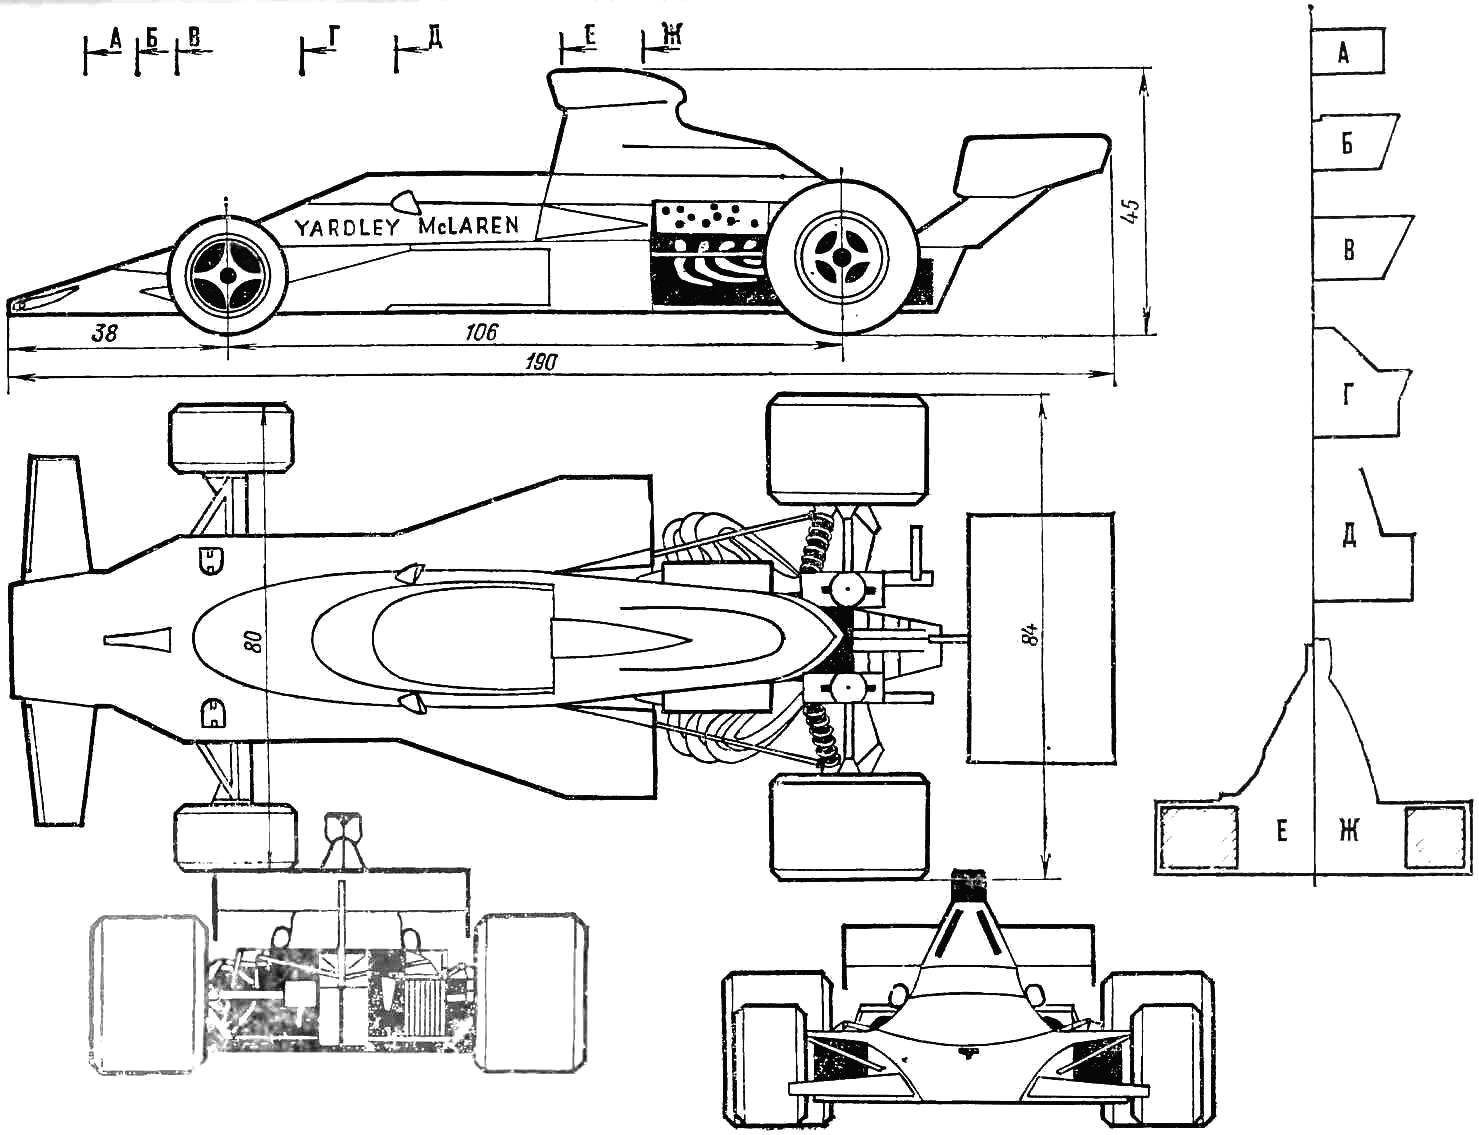 Fig. 1. Appearance and cross section of the body of the model race car